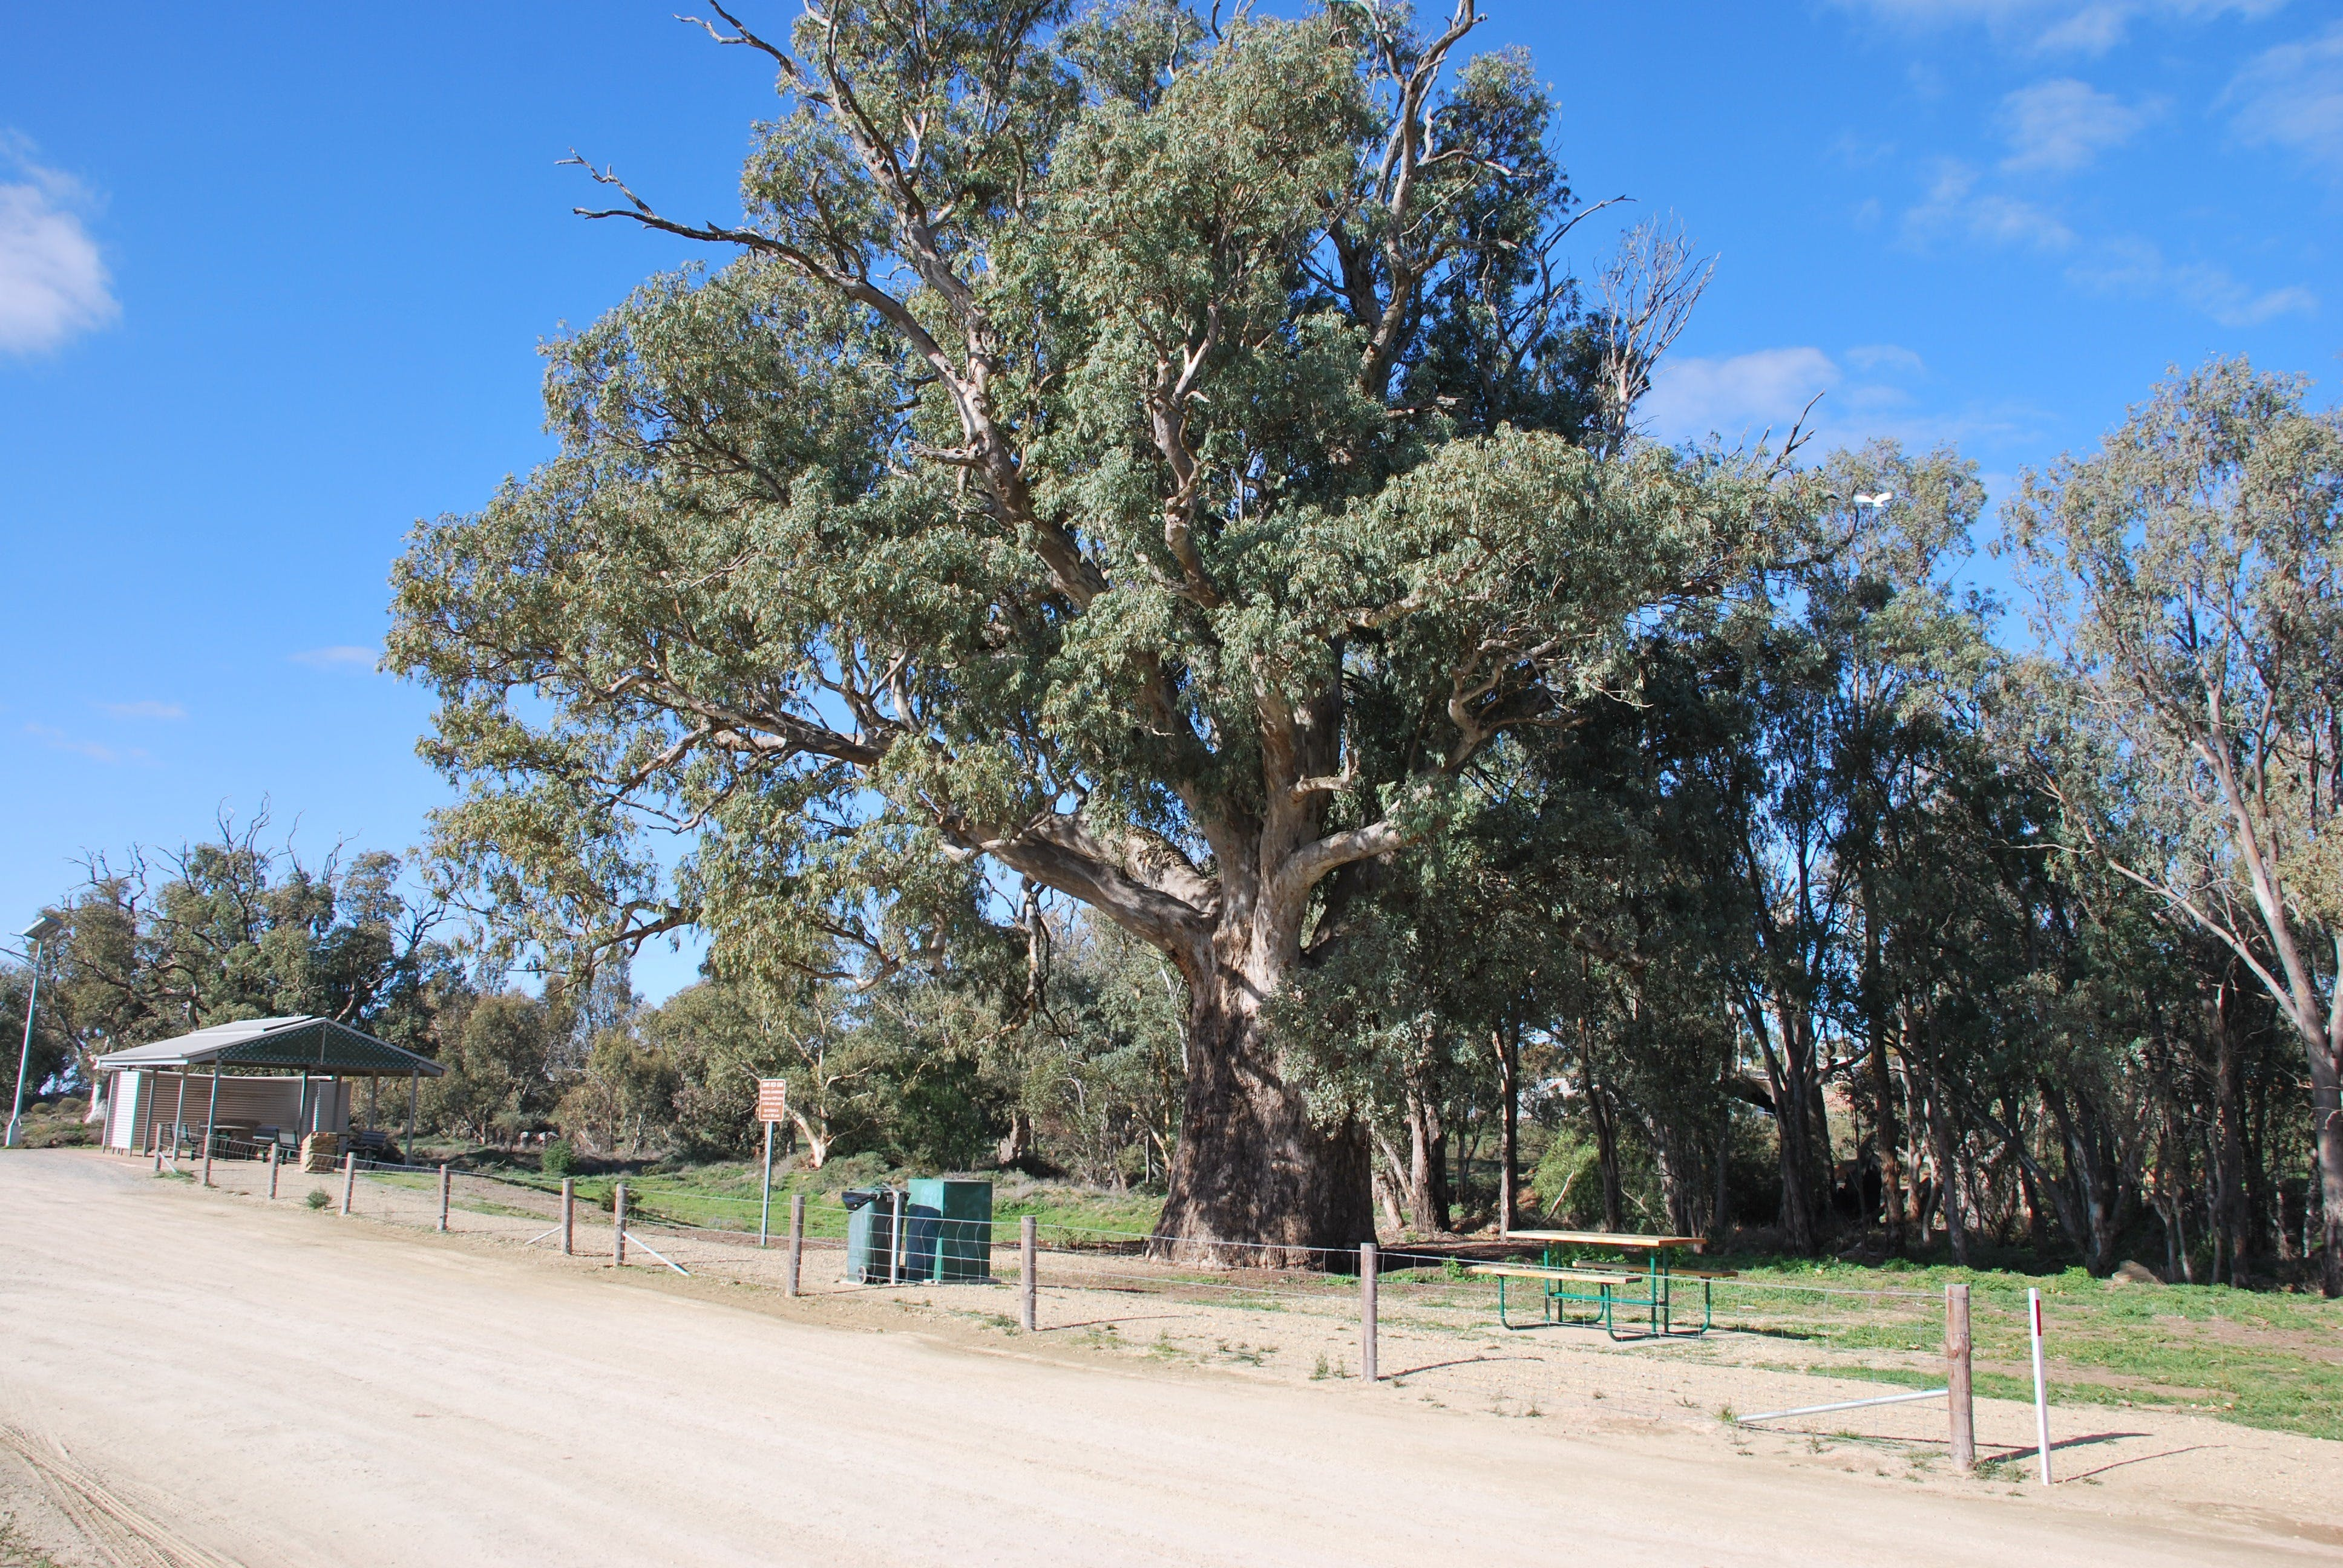 Giant Gum Tree - Accommodation Sunshine Coast